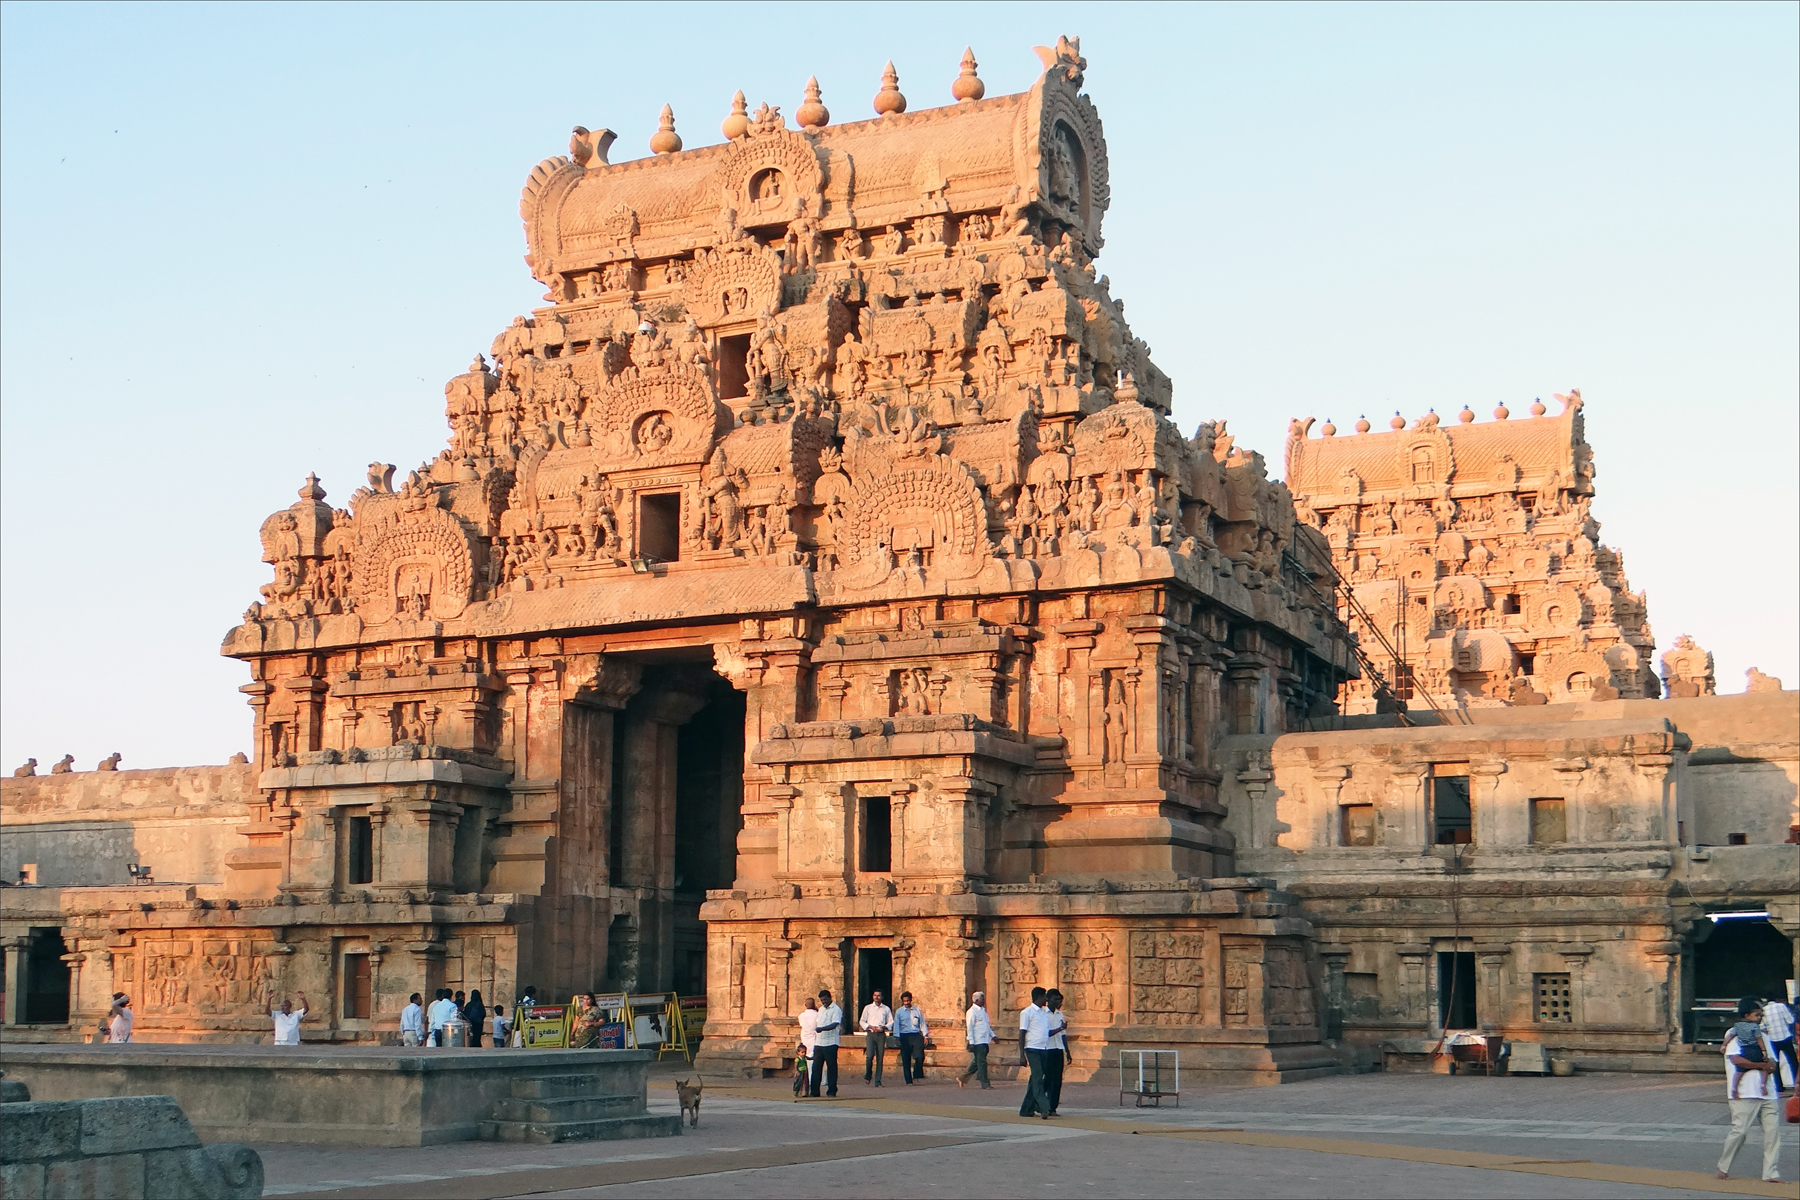 11th century Chola Thanjavur temple  built under Raja Raja Chola  It is one  of the largest temples in India  and in Tamil is called Periya Kovil  lit High Dravidian Architecture of South India  One of the Most  . Most Beautiful Architecture In India. Home Design Ideas